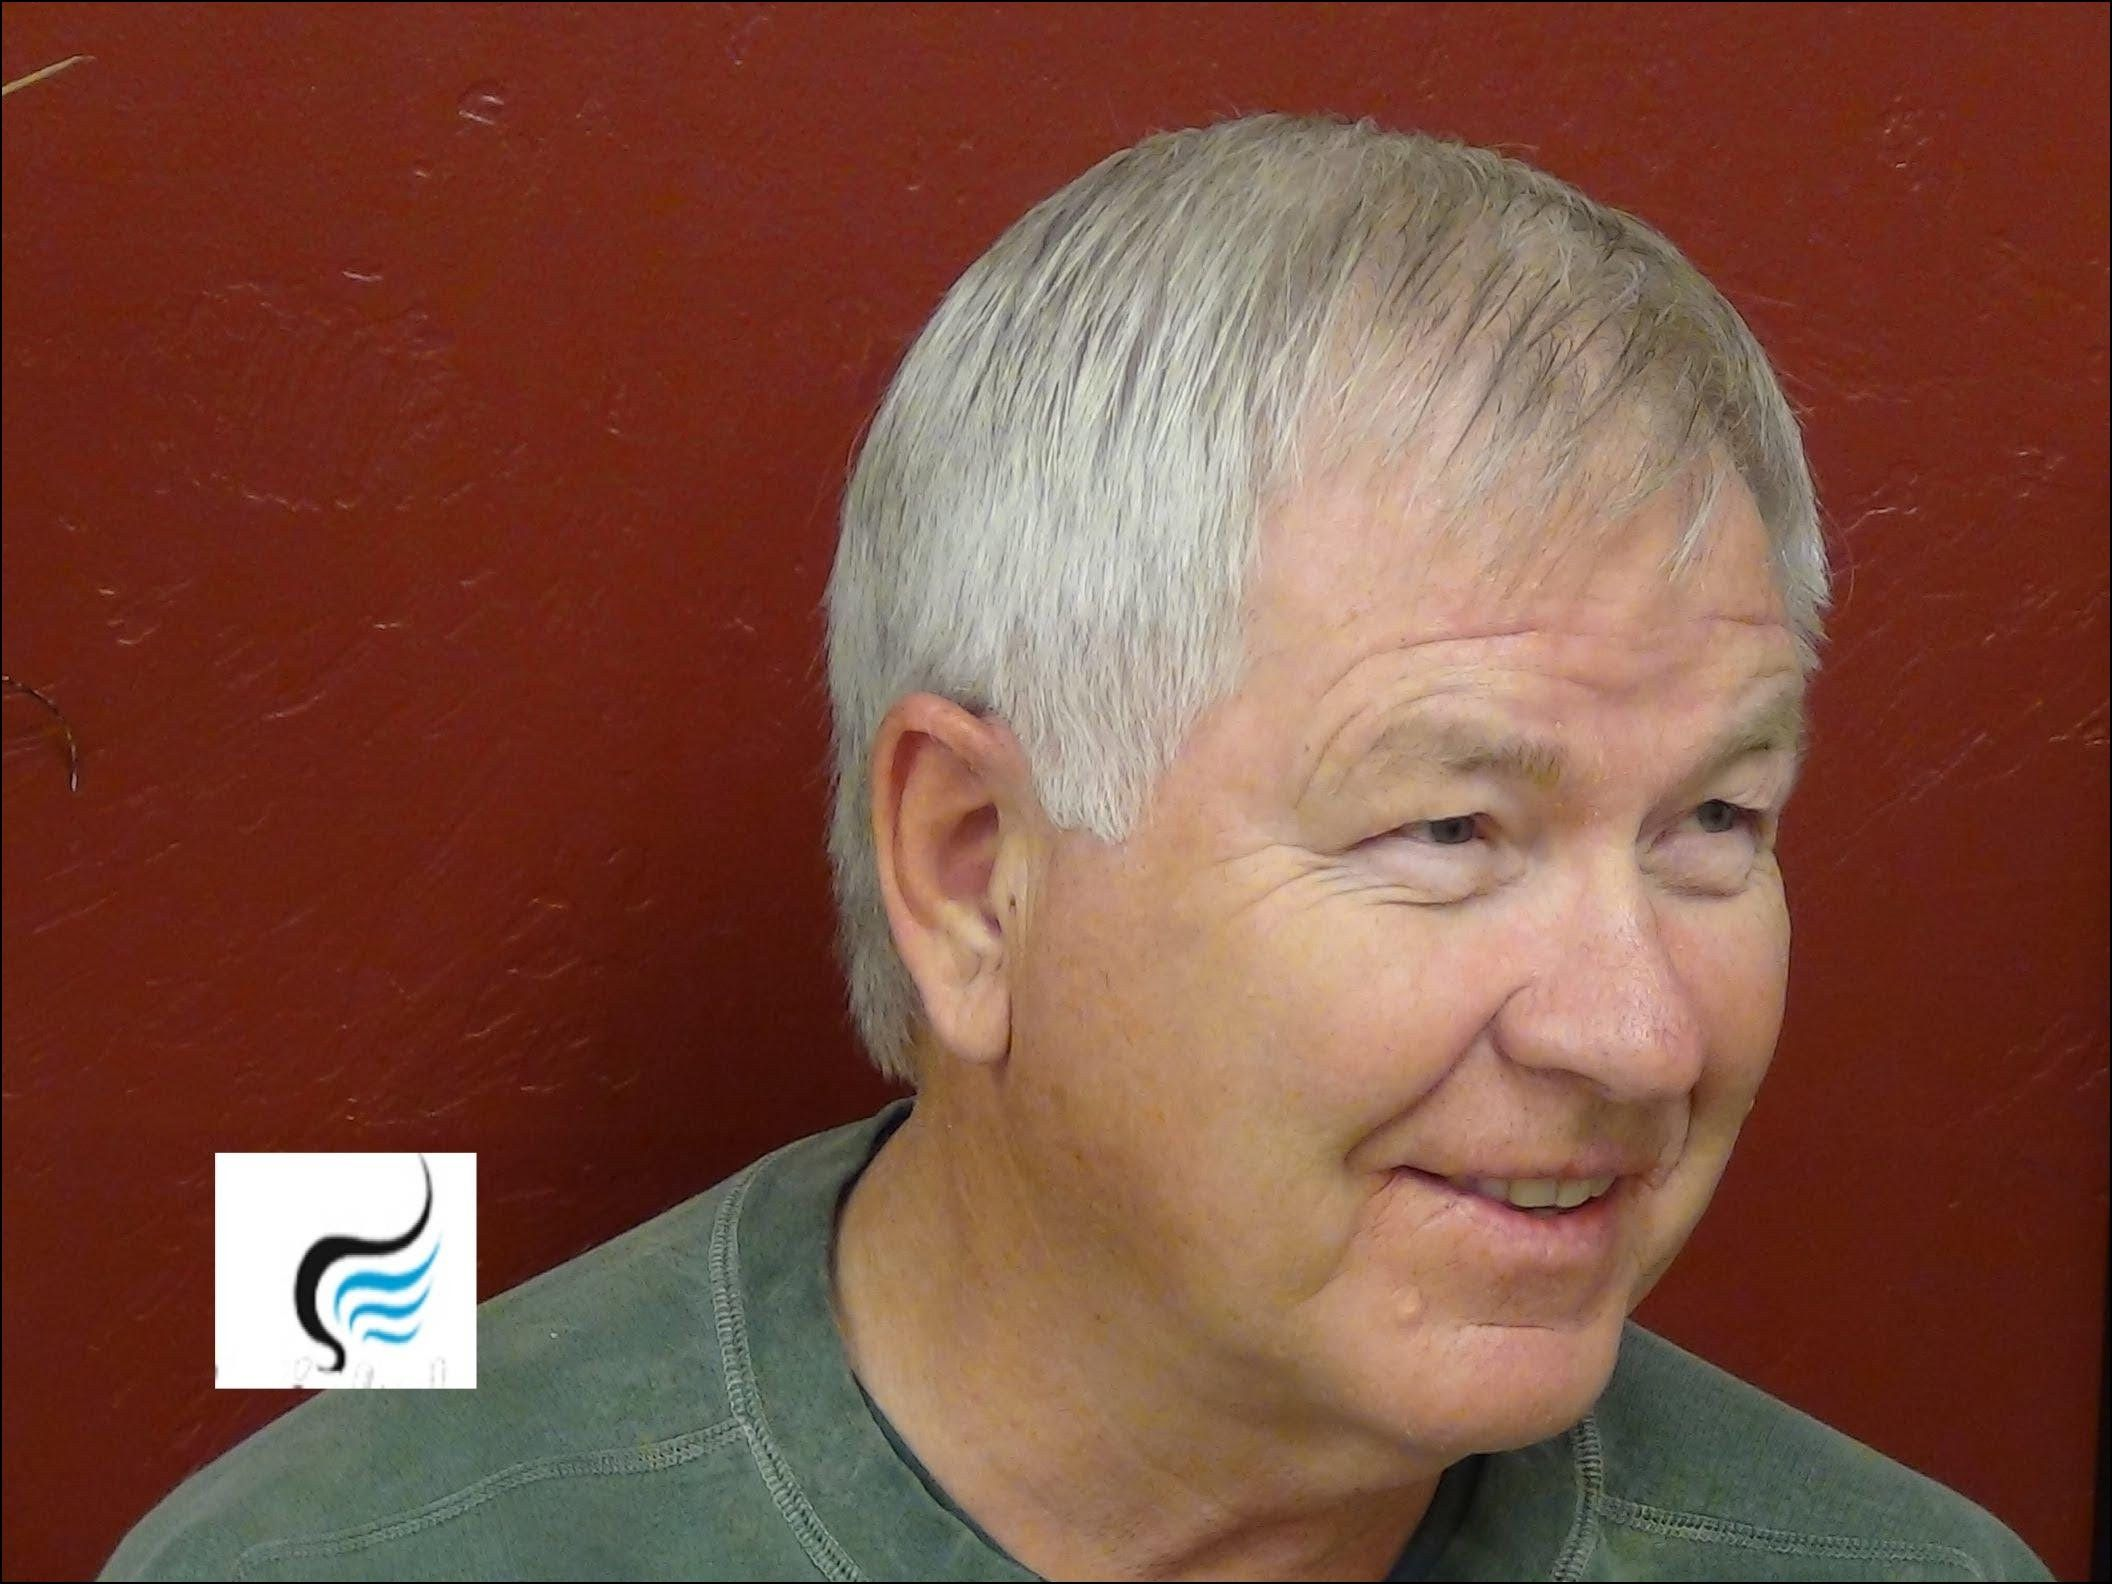 Short haircut for balding men haircuts for older men with thinning hair  hairstyles ideas